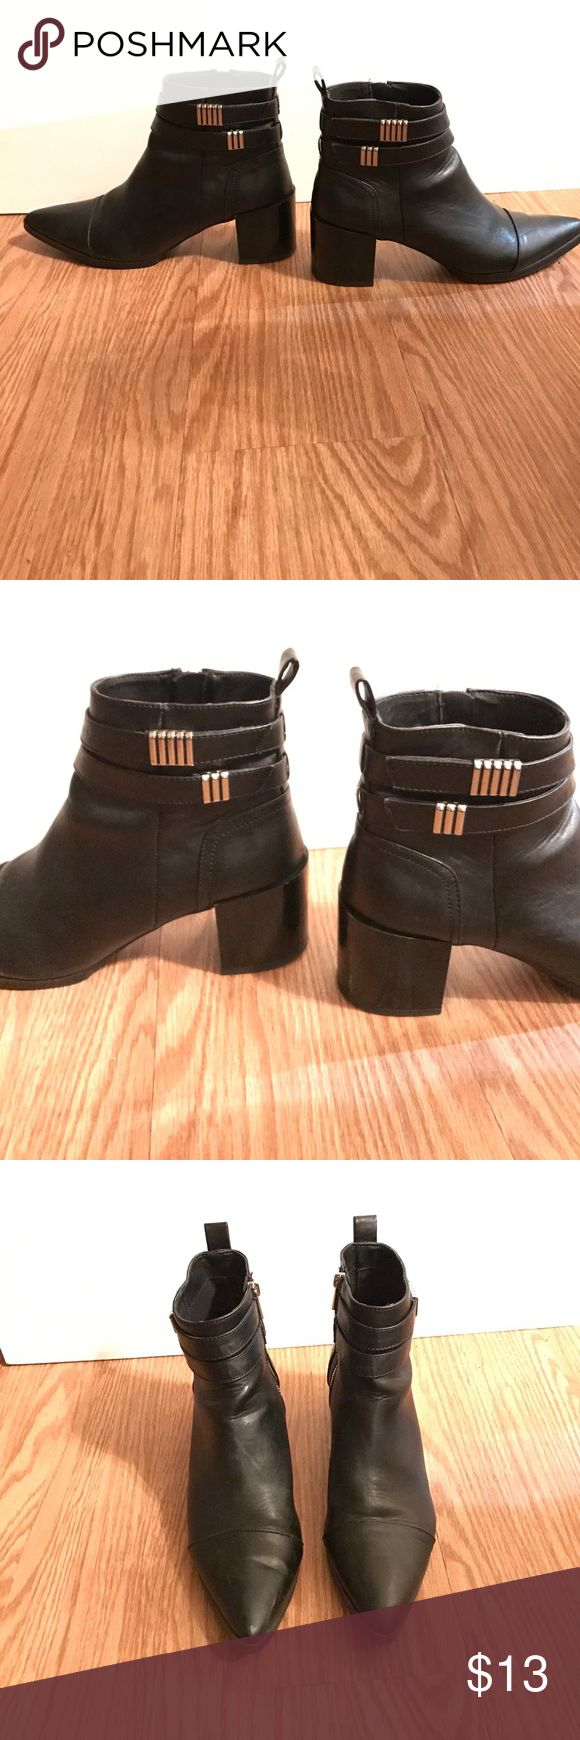 Forever 21 Women's Black Heeled Boots (10) Minor signs of wear on heels and near inner ankle on the exterior (see images). Still in great condition. Wide heel with pointed front. Zippers on inner ankle. Faux black leather. Forever 21 Shoes Ankle Boots & Booties